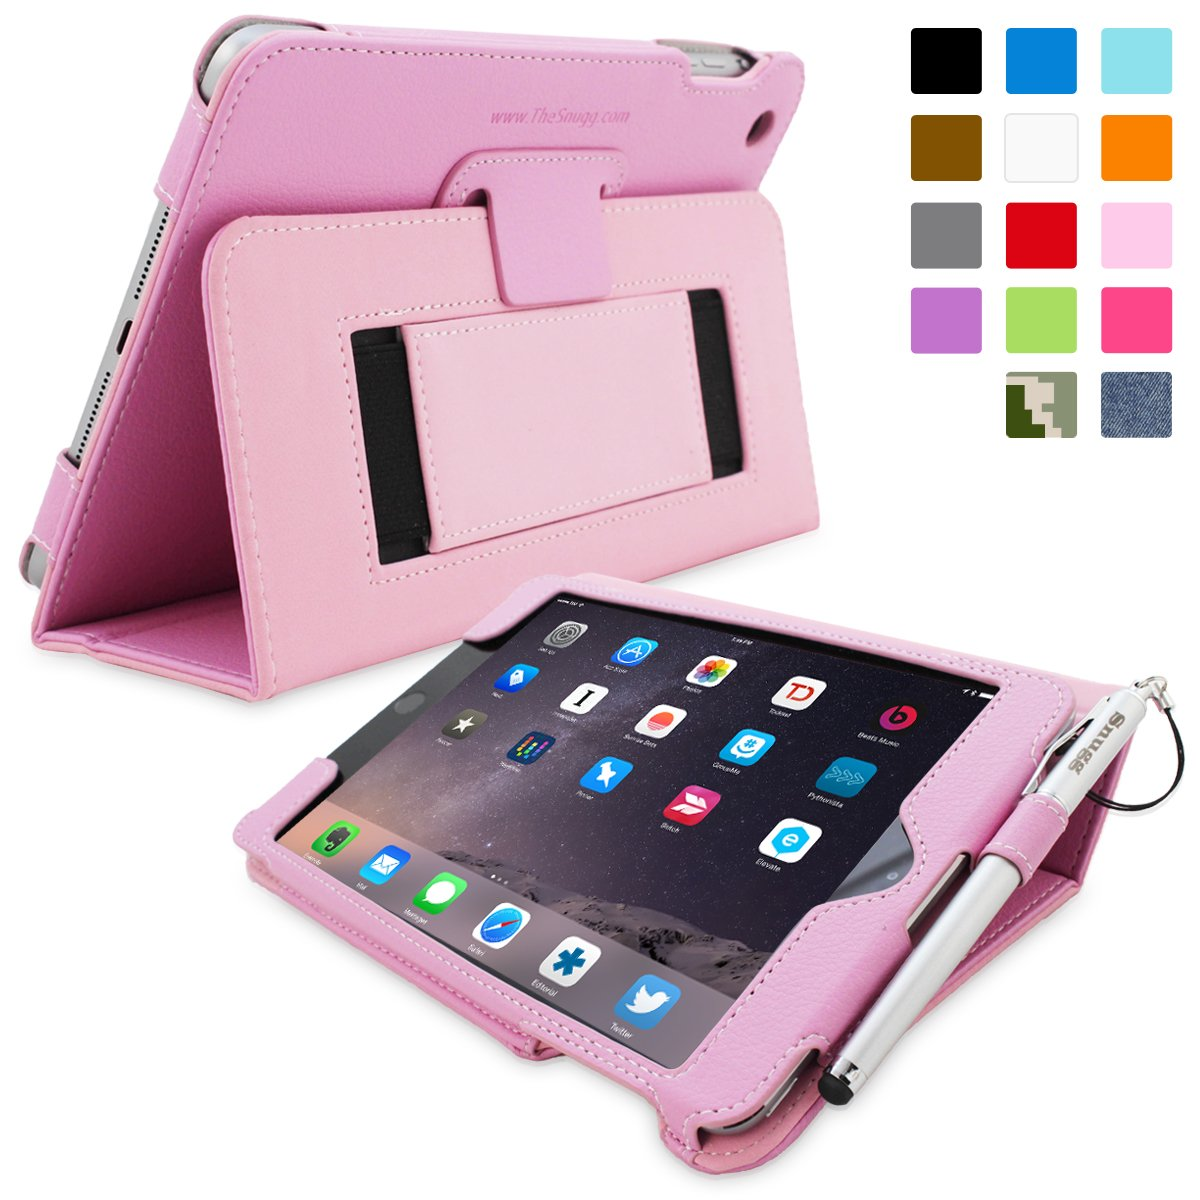 Snugg™ iPad Mini 3 Case   Smart Cover with Flipreviews and more information